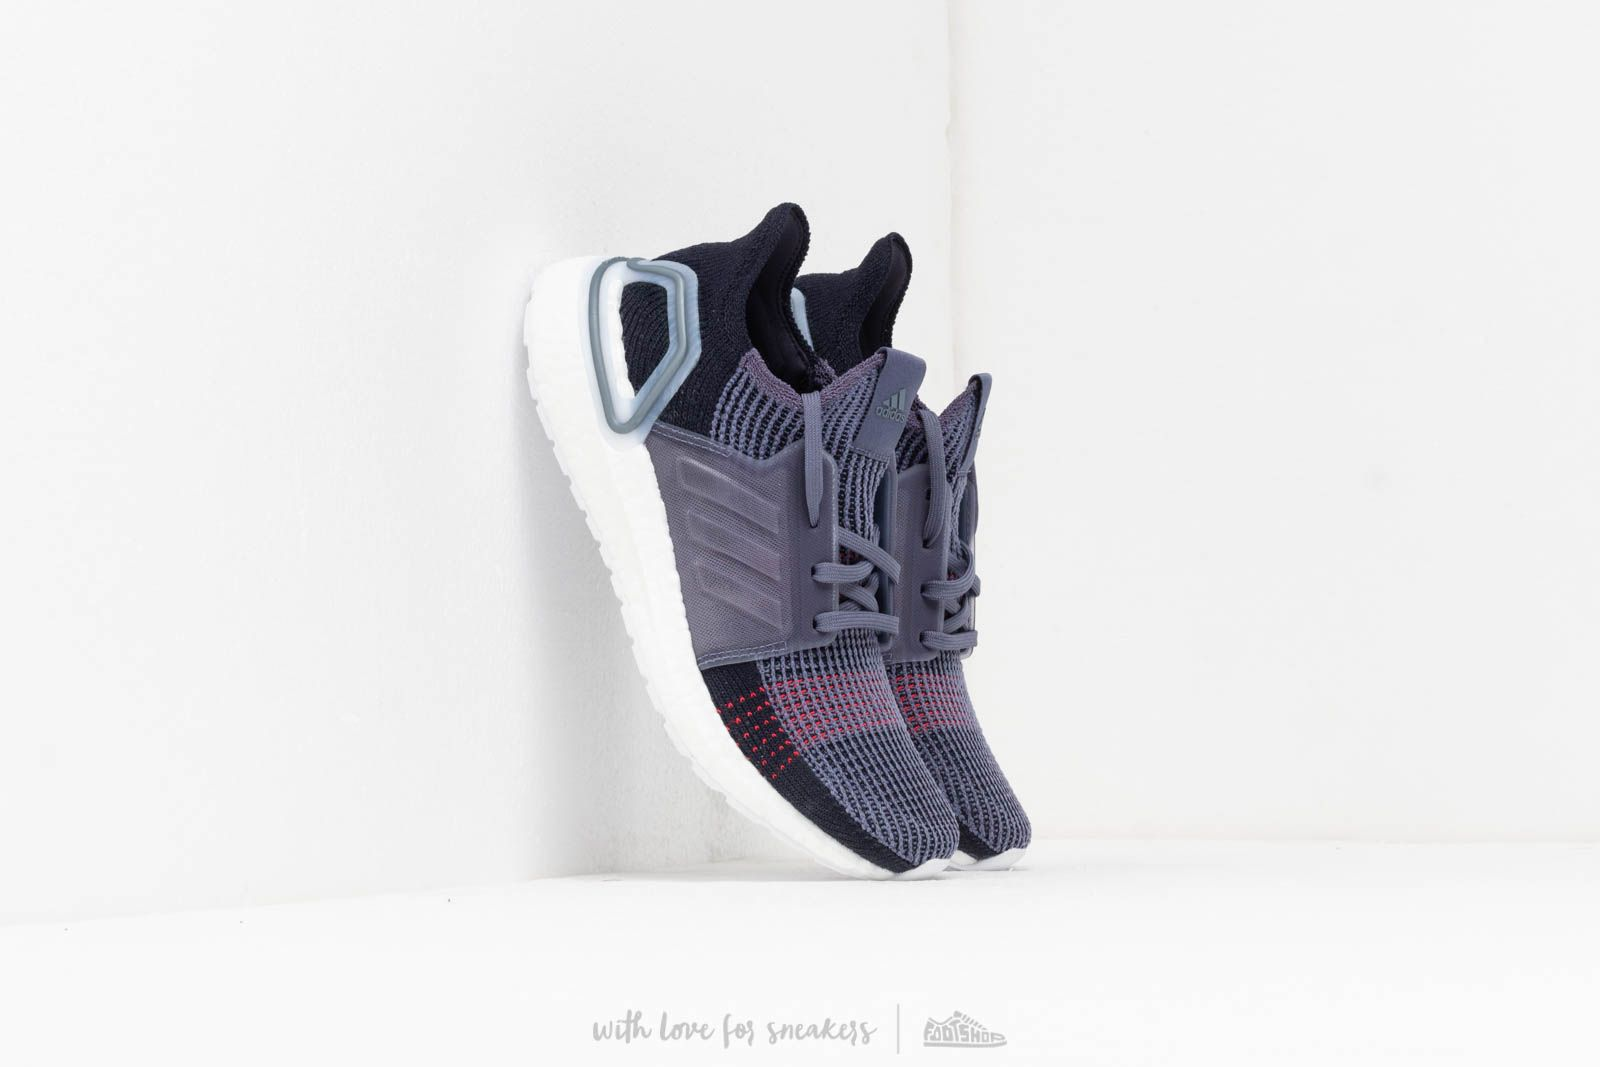 huge selection of 36da6 fe935 adidas UltraBOOST 19 W Raw Indigo Raw Indigo Shock Red at a great price